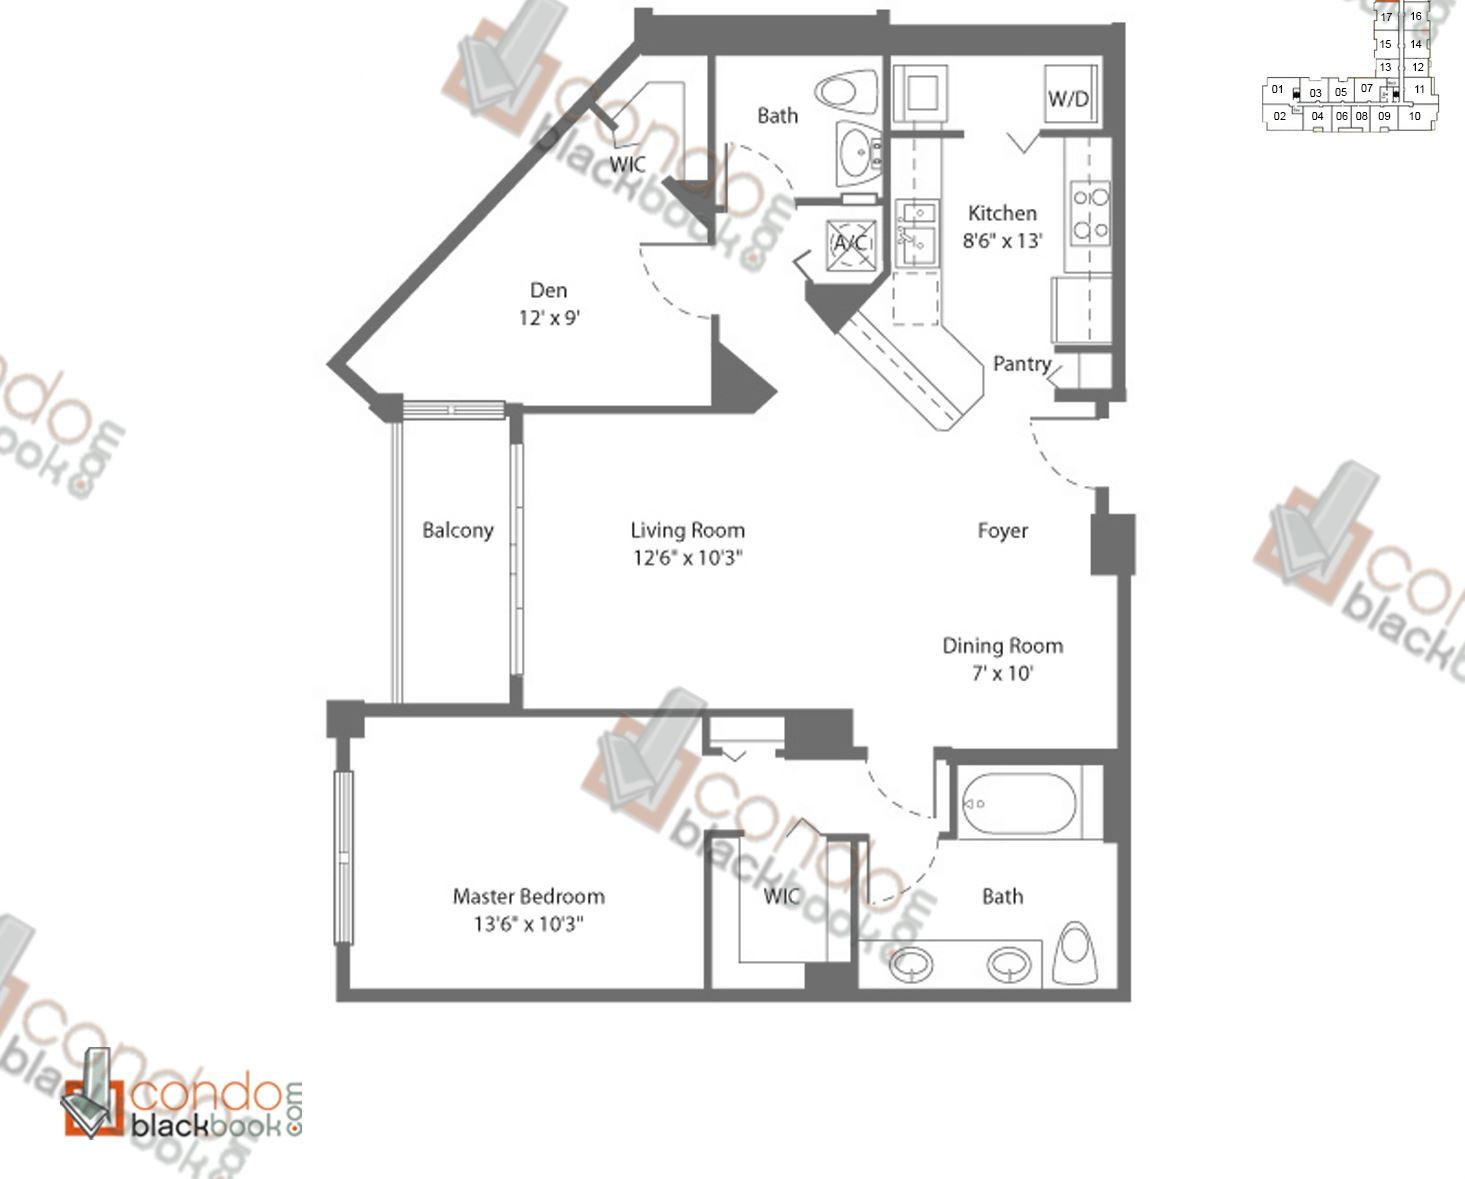 Floor plan for Cite Edgewater Miami, model A3, line 19,23, 1/1.5+DEN bedrooms, 977 sq ft